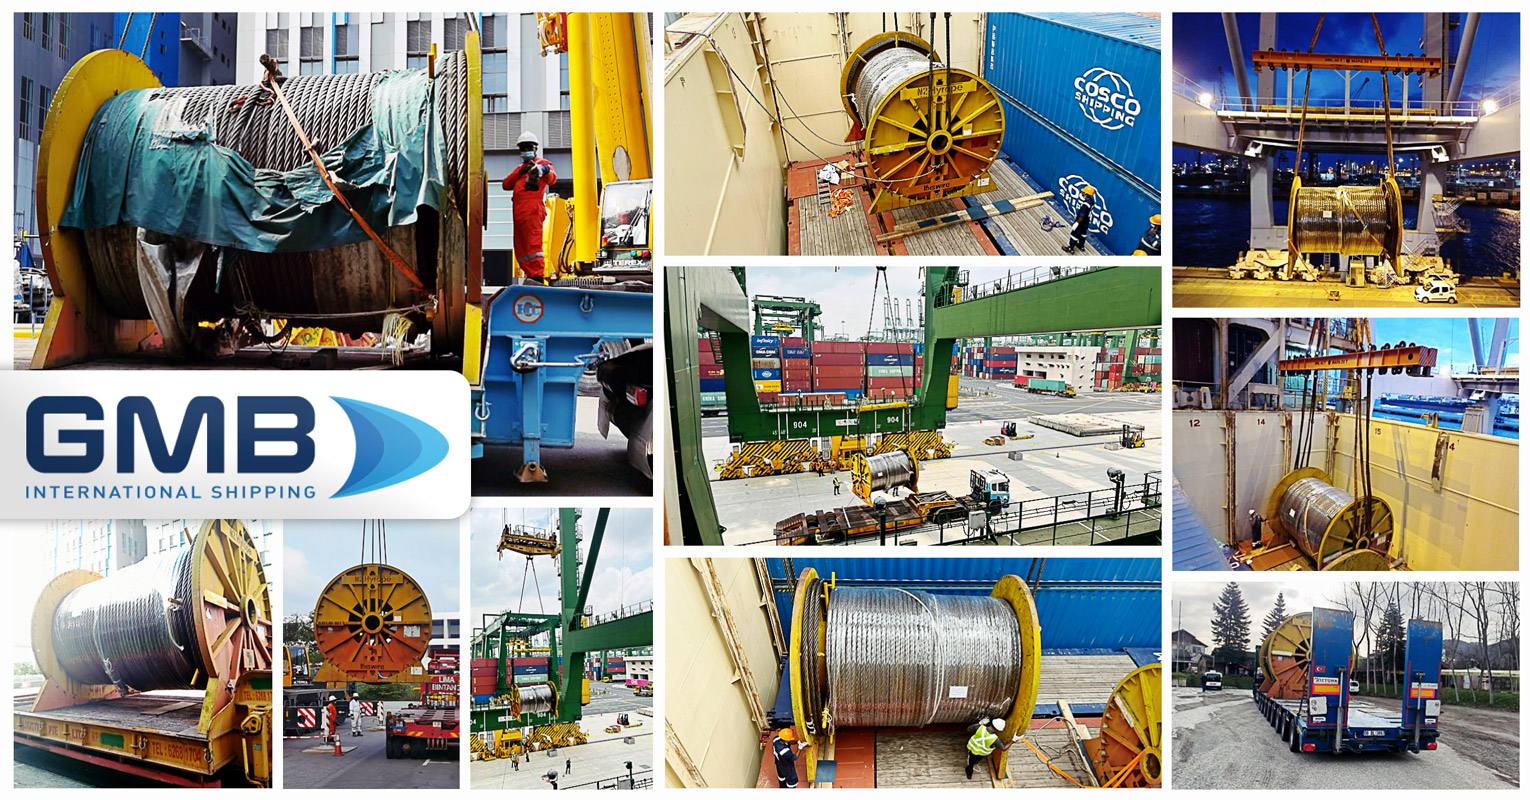 G M B International Shipping Transported 59mt Wire Rope Reels from Singapore to Baku, Azerbaijan